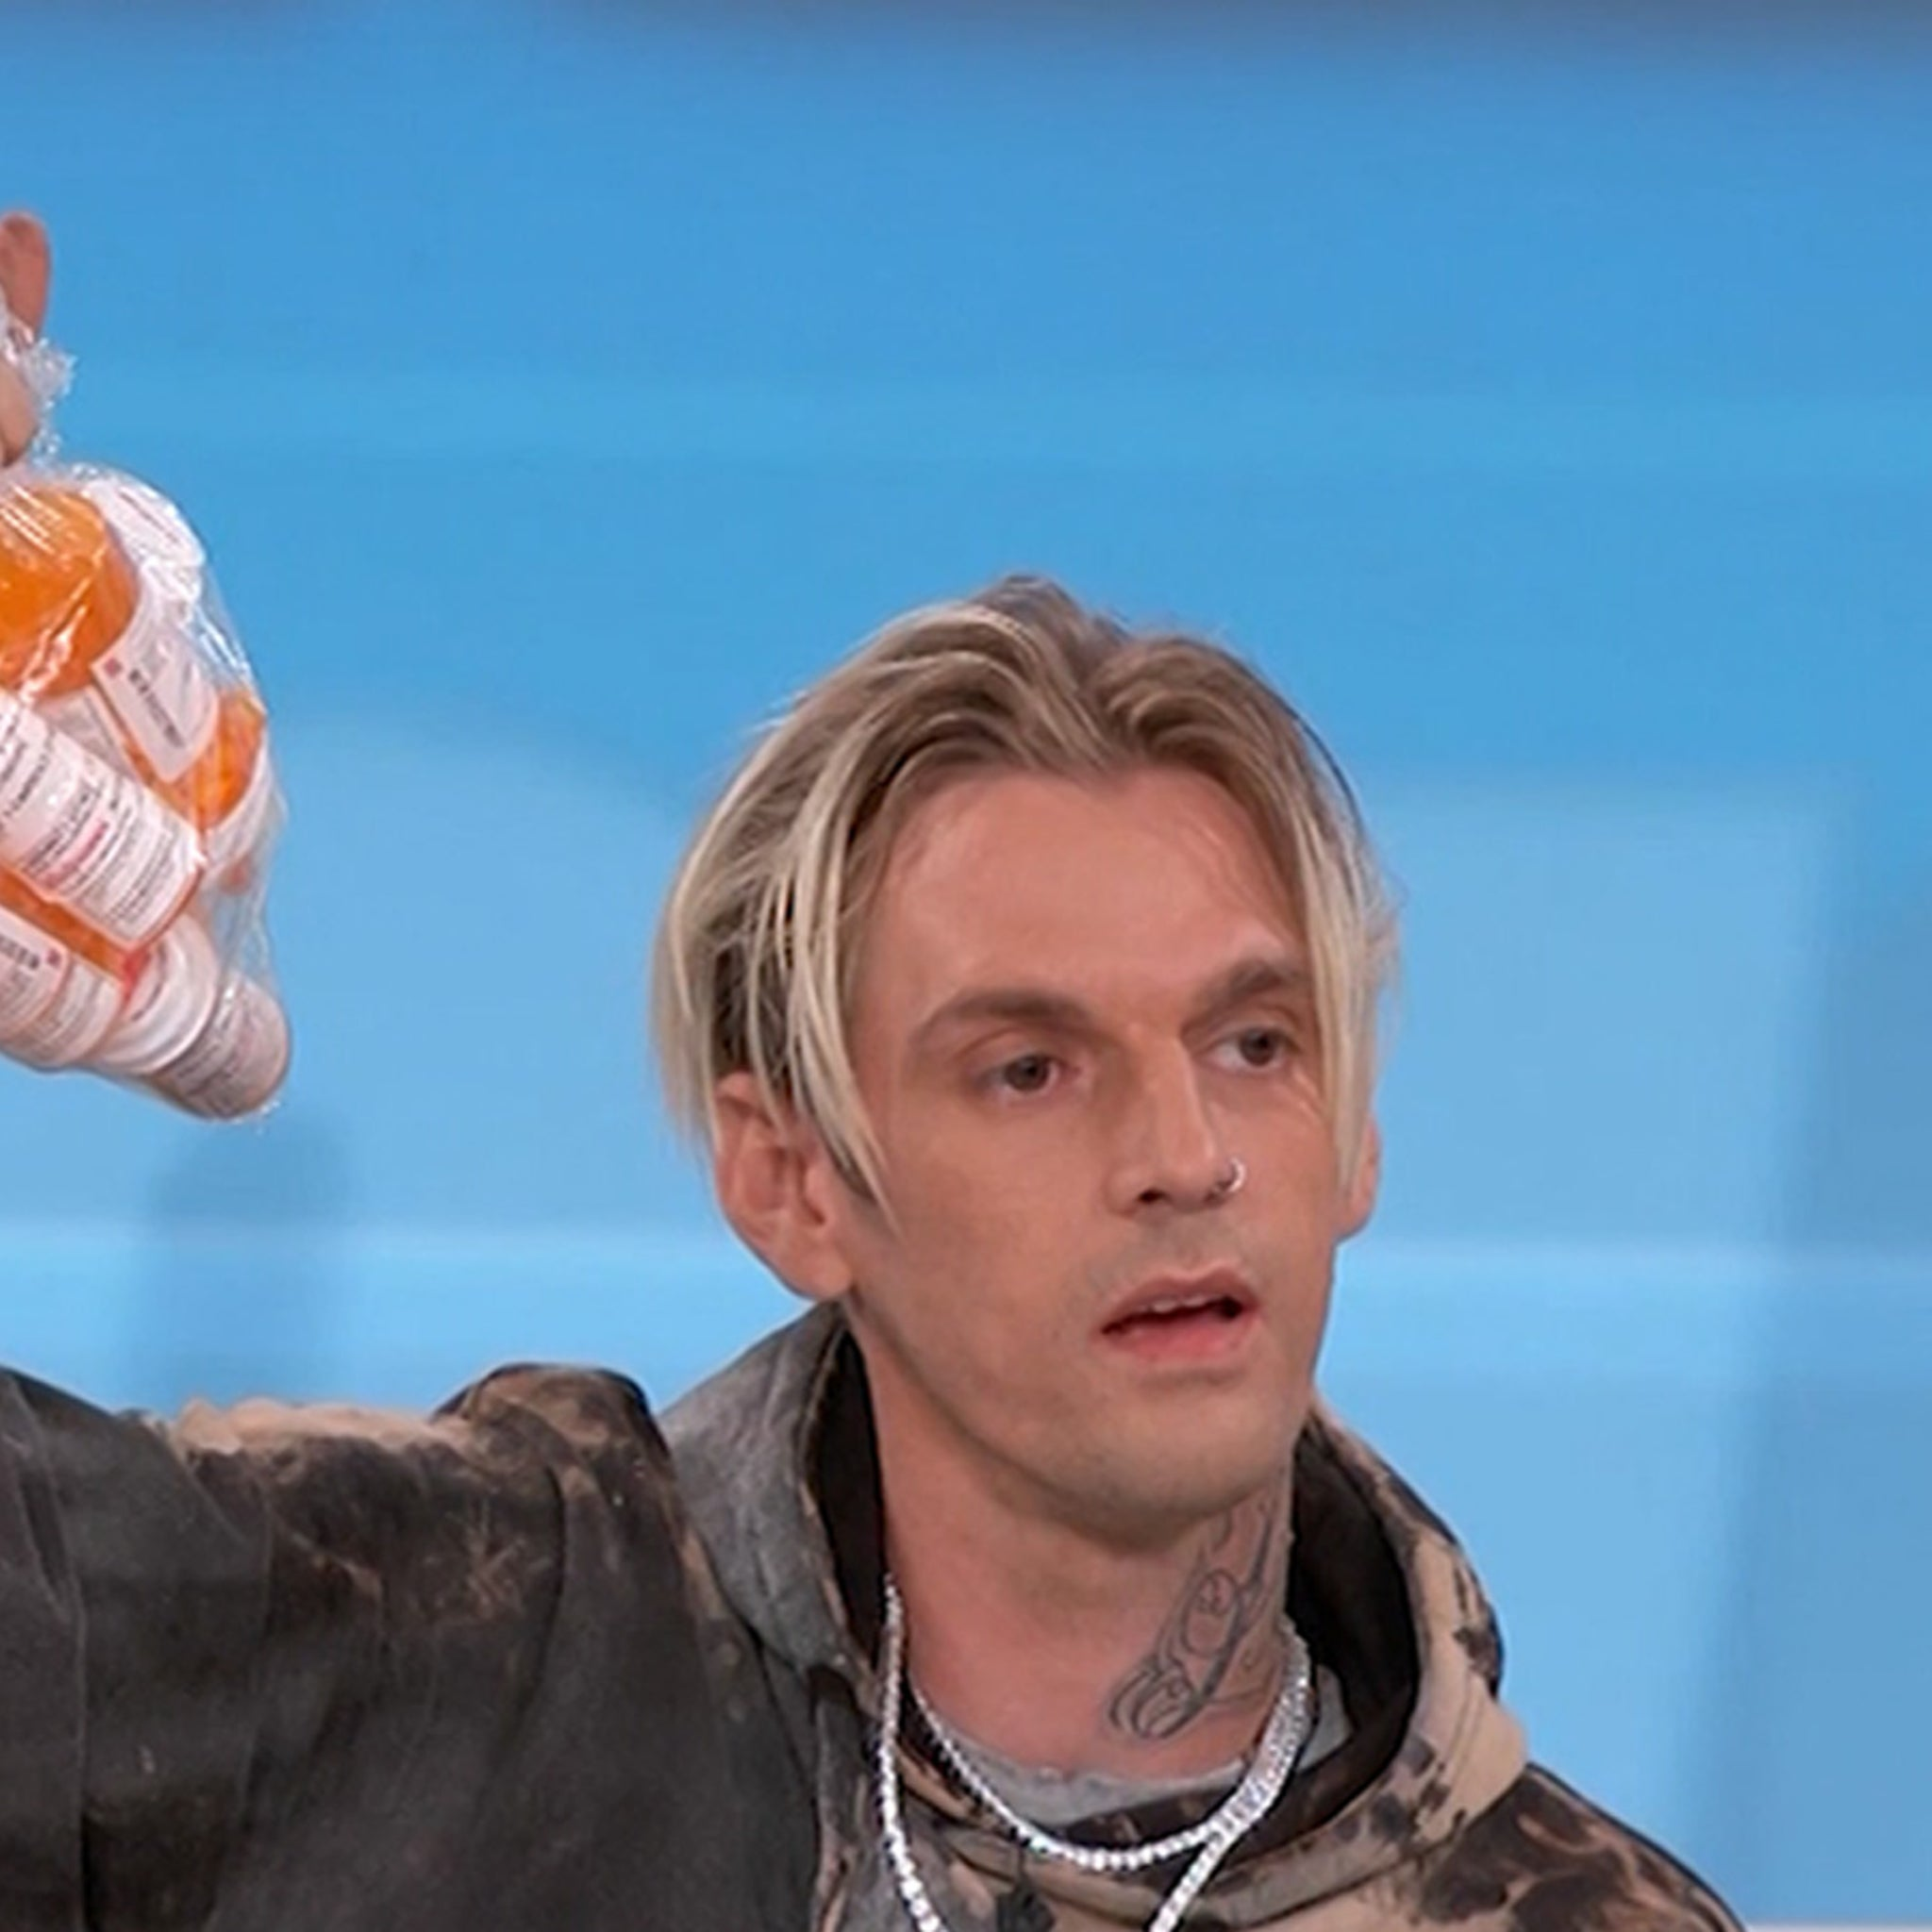 Aaron Carter Reveals His Mental Illness Diagnosis on 'The Doctors'